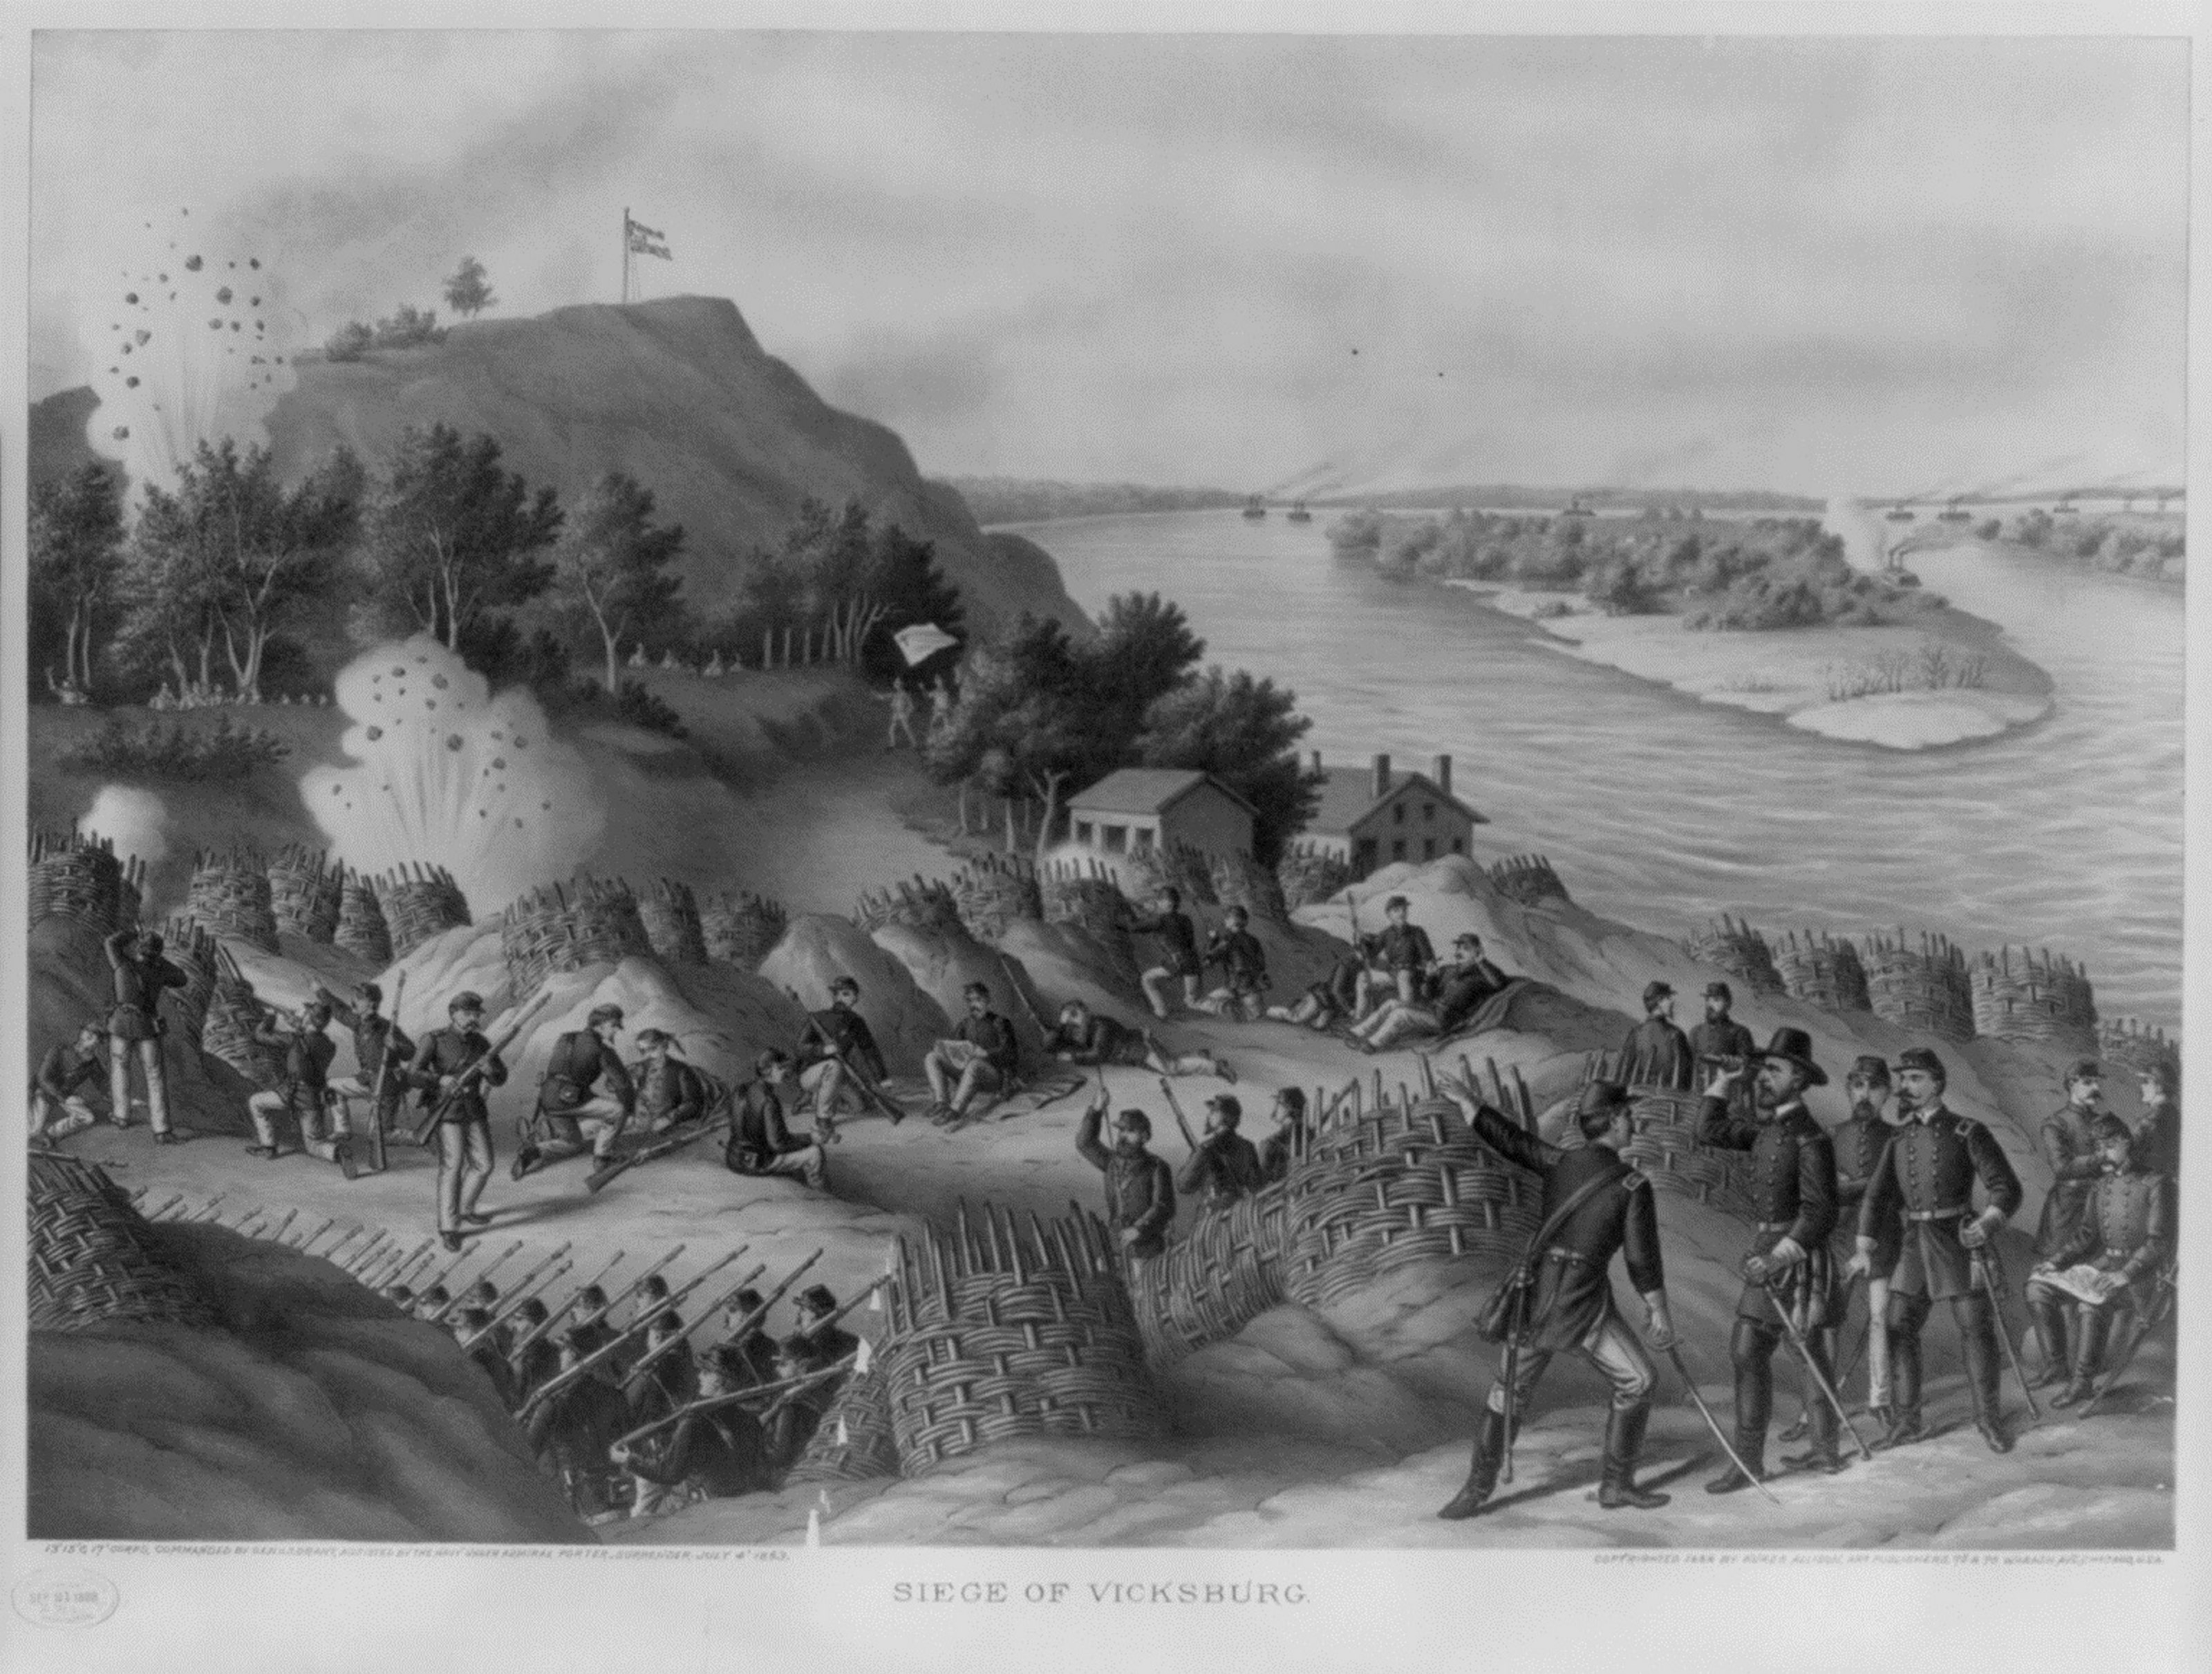 """One of the """"Twenty Clashes That Changed the World"""" was the Battle of Vicksburg, shown in artist's rendition."""